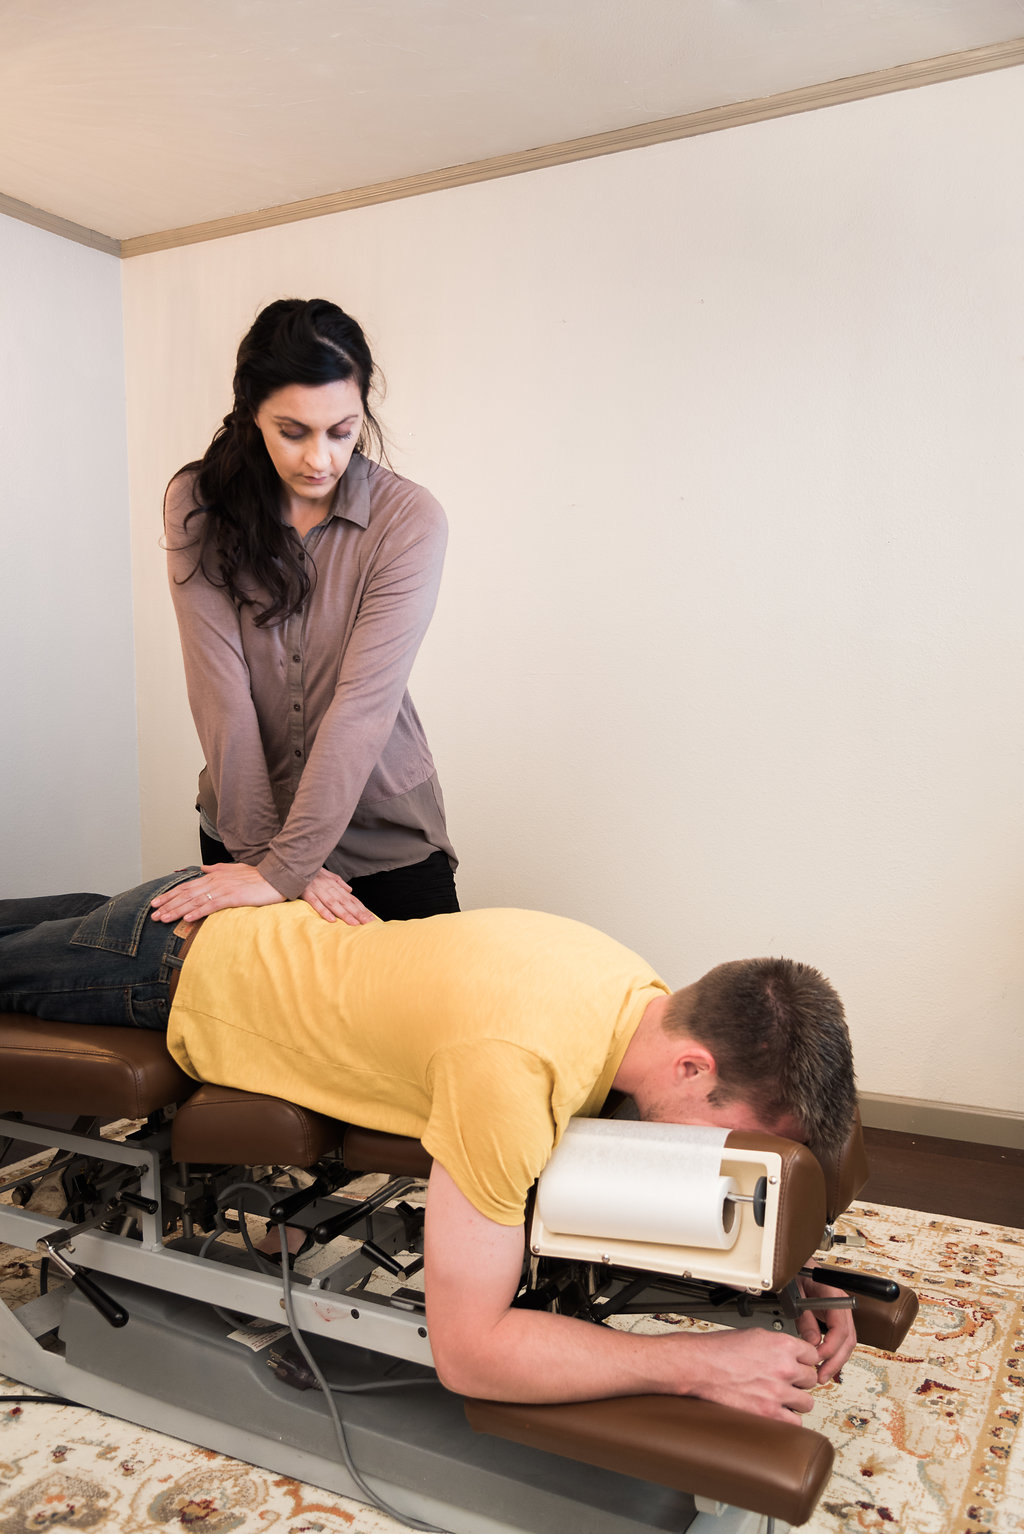 Adults   Getting your spine adjusted is healthy for your body. Your energy level and life expression is directly related to the movement of your spine. We understand life is full of healthy decisions to be made. However, if your brain and body is not communicating at 100% then all that exercise and organic food is not being processed at 100%. The nervous system controls every other system in the body. With hard labor jobs or sitting at a desk all day, our spine and nervous system can be bombarded with may challenges. Your body is intelligent and normally able to adapt to issues that occur, but sometimes it faces so many challenges it can create that perfect storm resulting in less life expression and or symptoms. The Grass Valley weather allows for lots of fun outside and we want to keep you healthy so you can enjoy life.